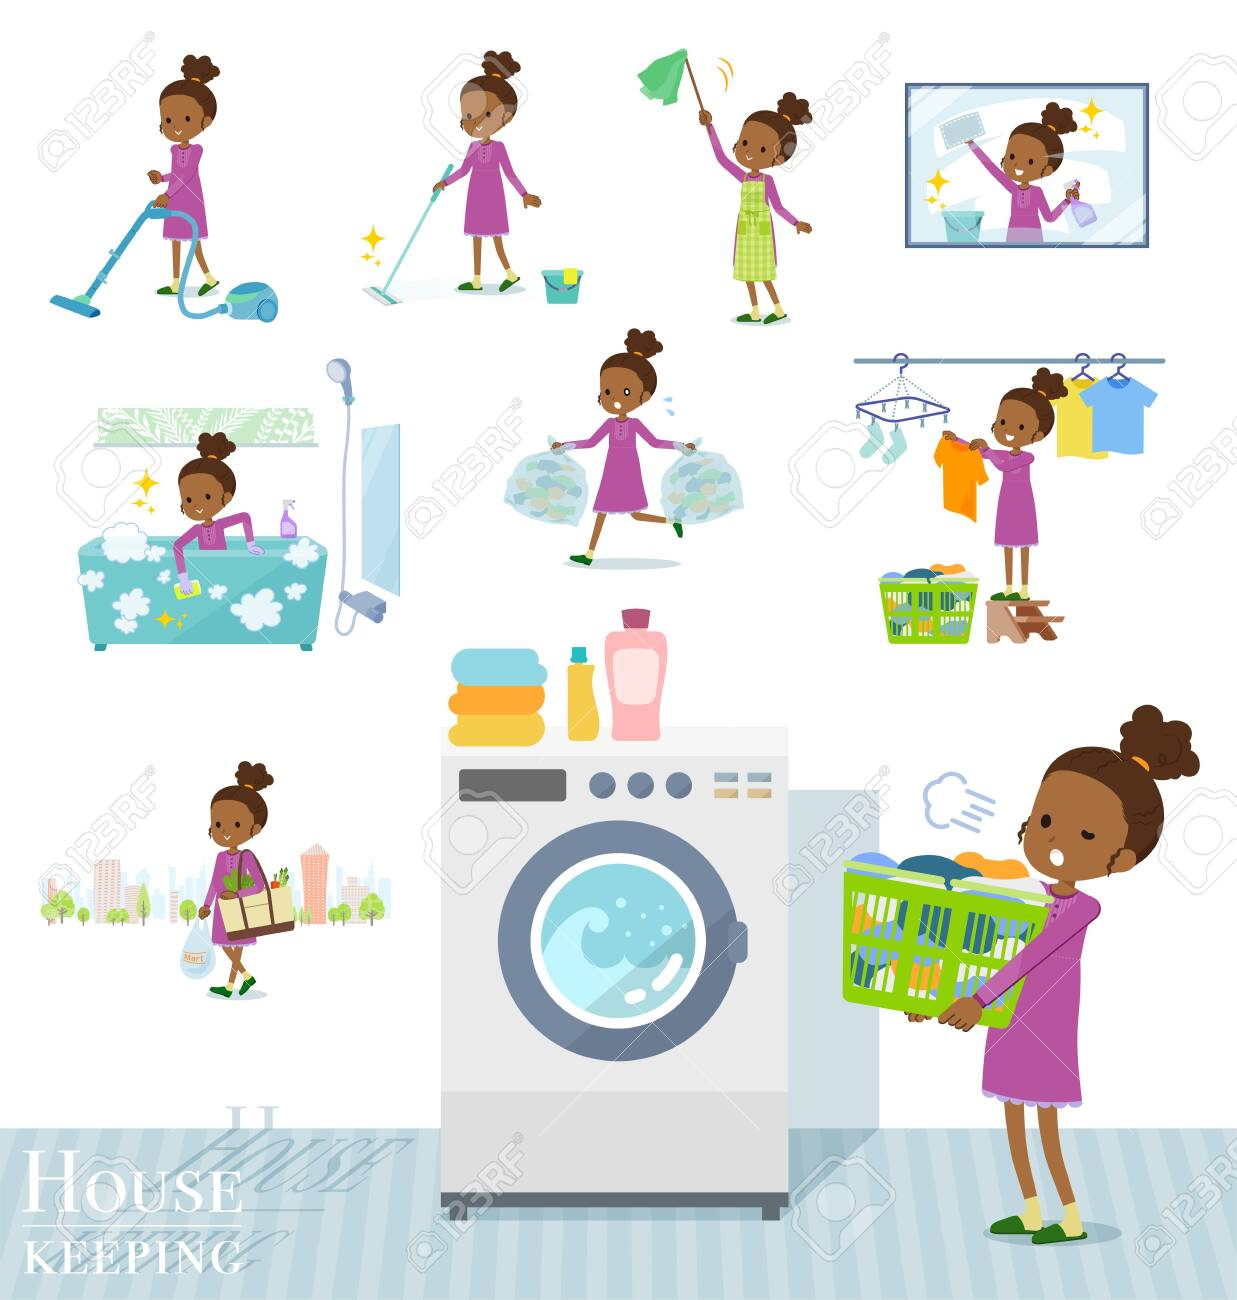 A set of girl related to housekeeping such as cleaning and laundry.There are various actions such as child rearing.It's vector art so it's easy to edit. - 129553976